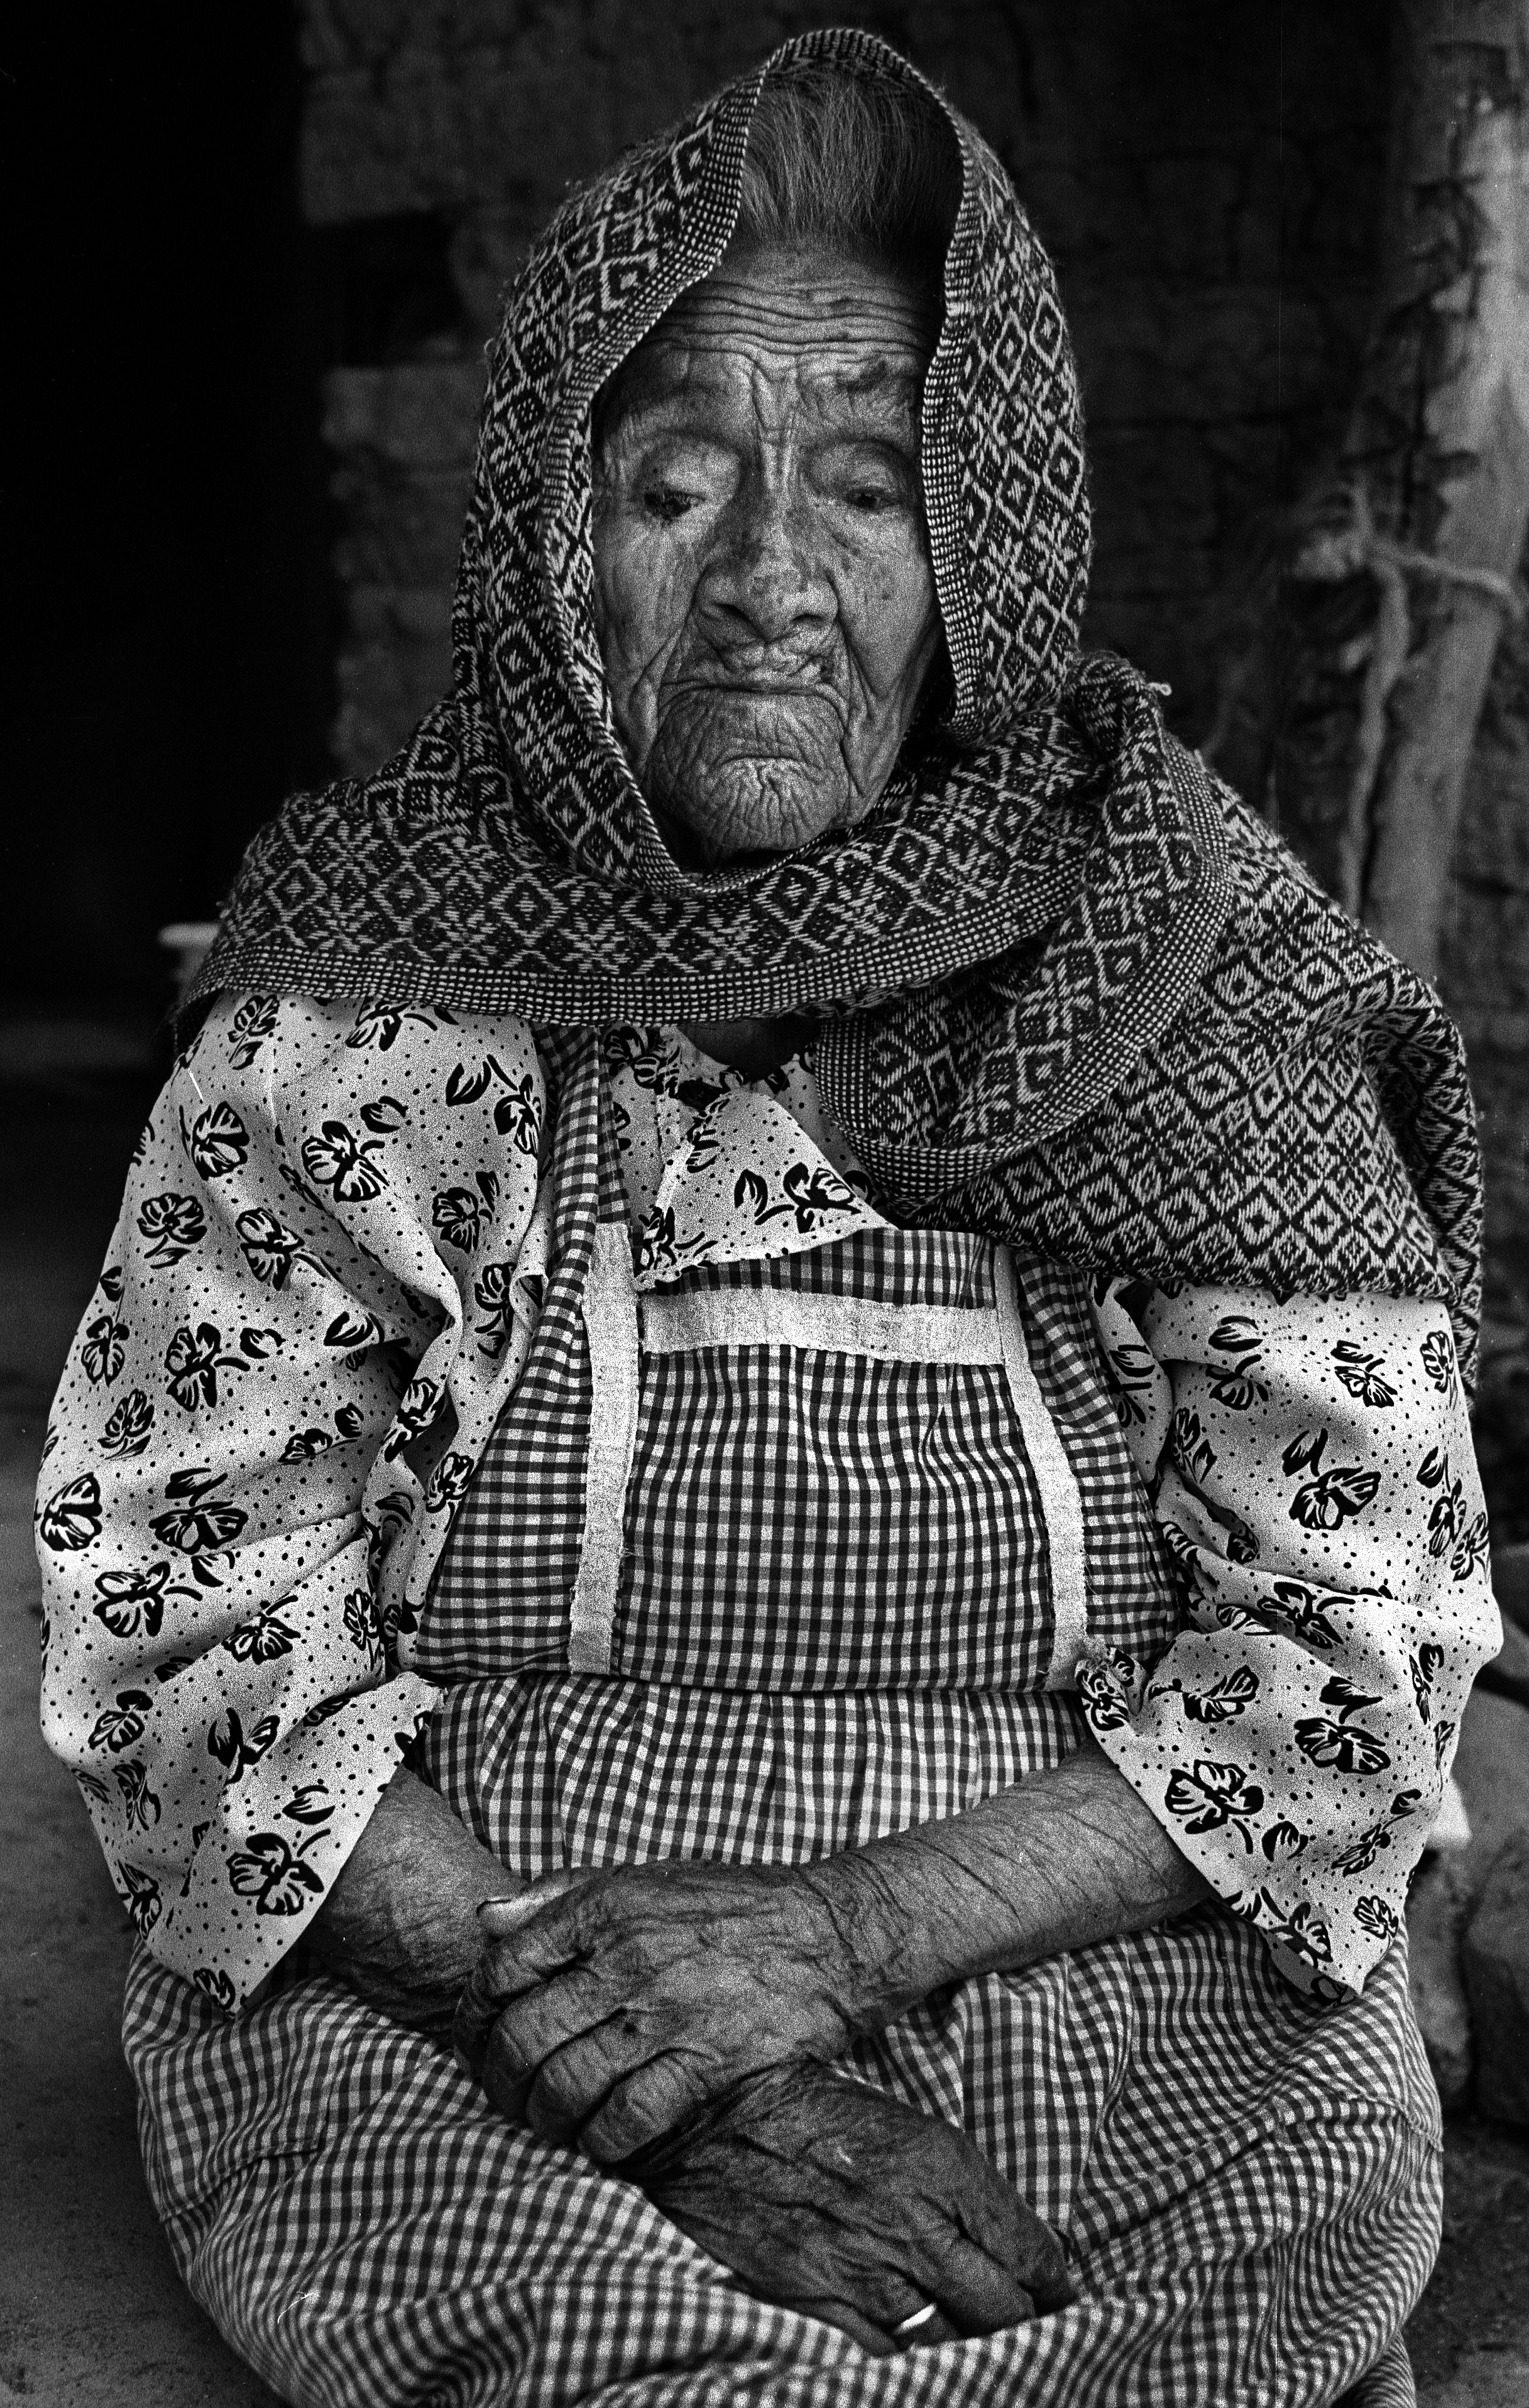 Natalia Ramirez Hernandez, 94.  Ms. Hernandez had 12 children during her marriage.  When she was 39 her husband decided to leave for the United States and she followed him to the border. He made it across. She didn't. They never saw each other again. Alone, she returned to her home in Mexico where she spent the rest of her life picking crops for other people: cotton, potatoes, strawberries, corn. She said that eight of her children died due to malnutrition. She was too poor to afford the crops that she spent her life picking.